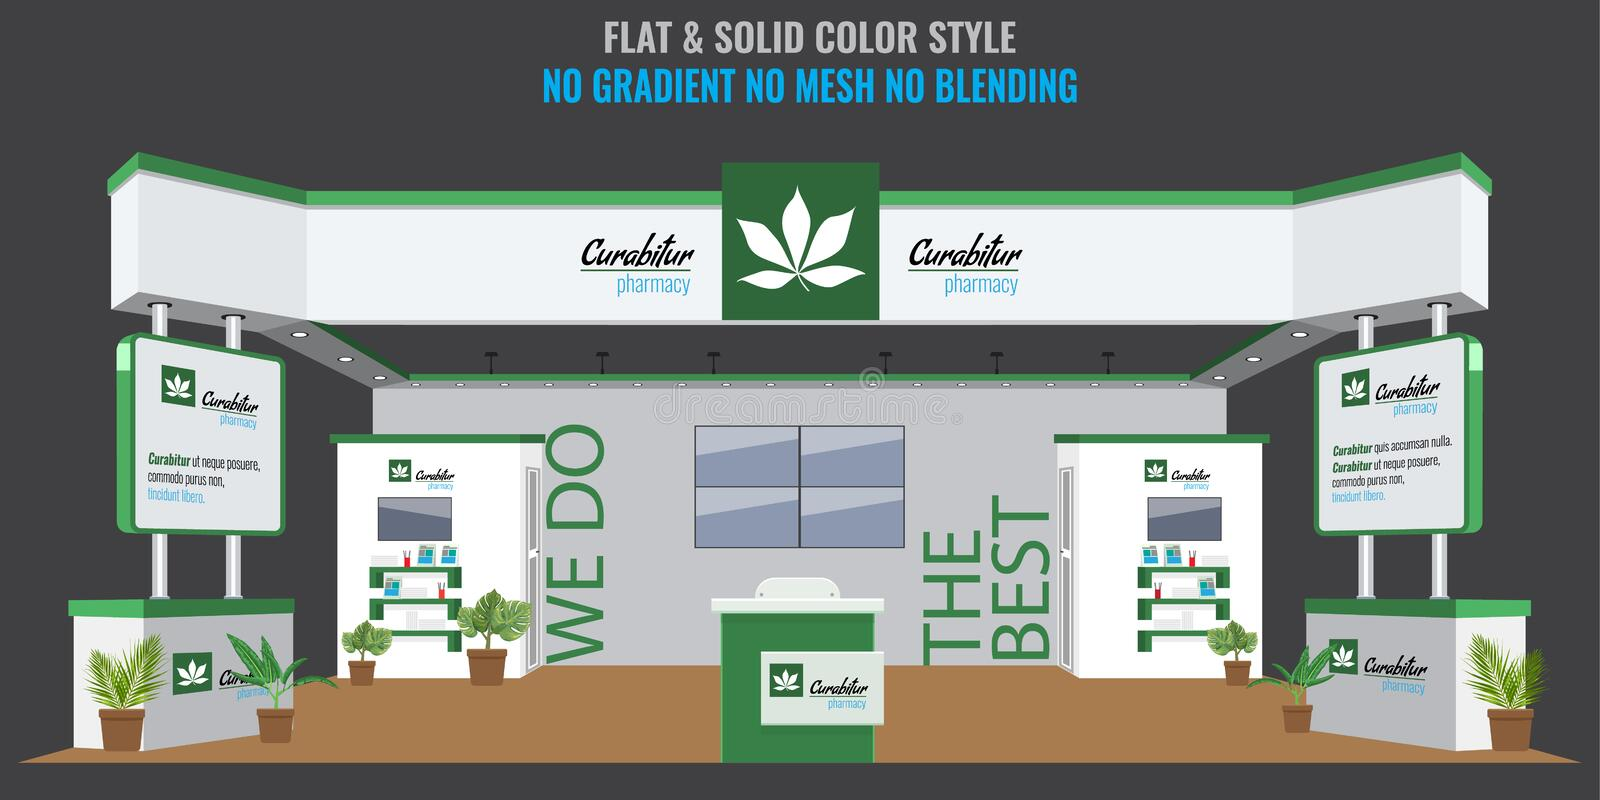 Grand Exhibition stand display mock up for pharmacy or medical company. Vector illustration. royalty free illustration